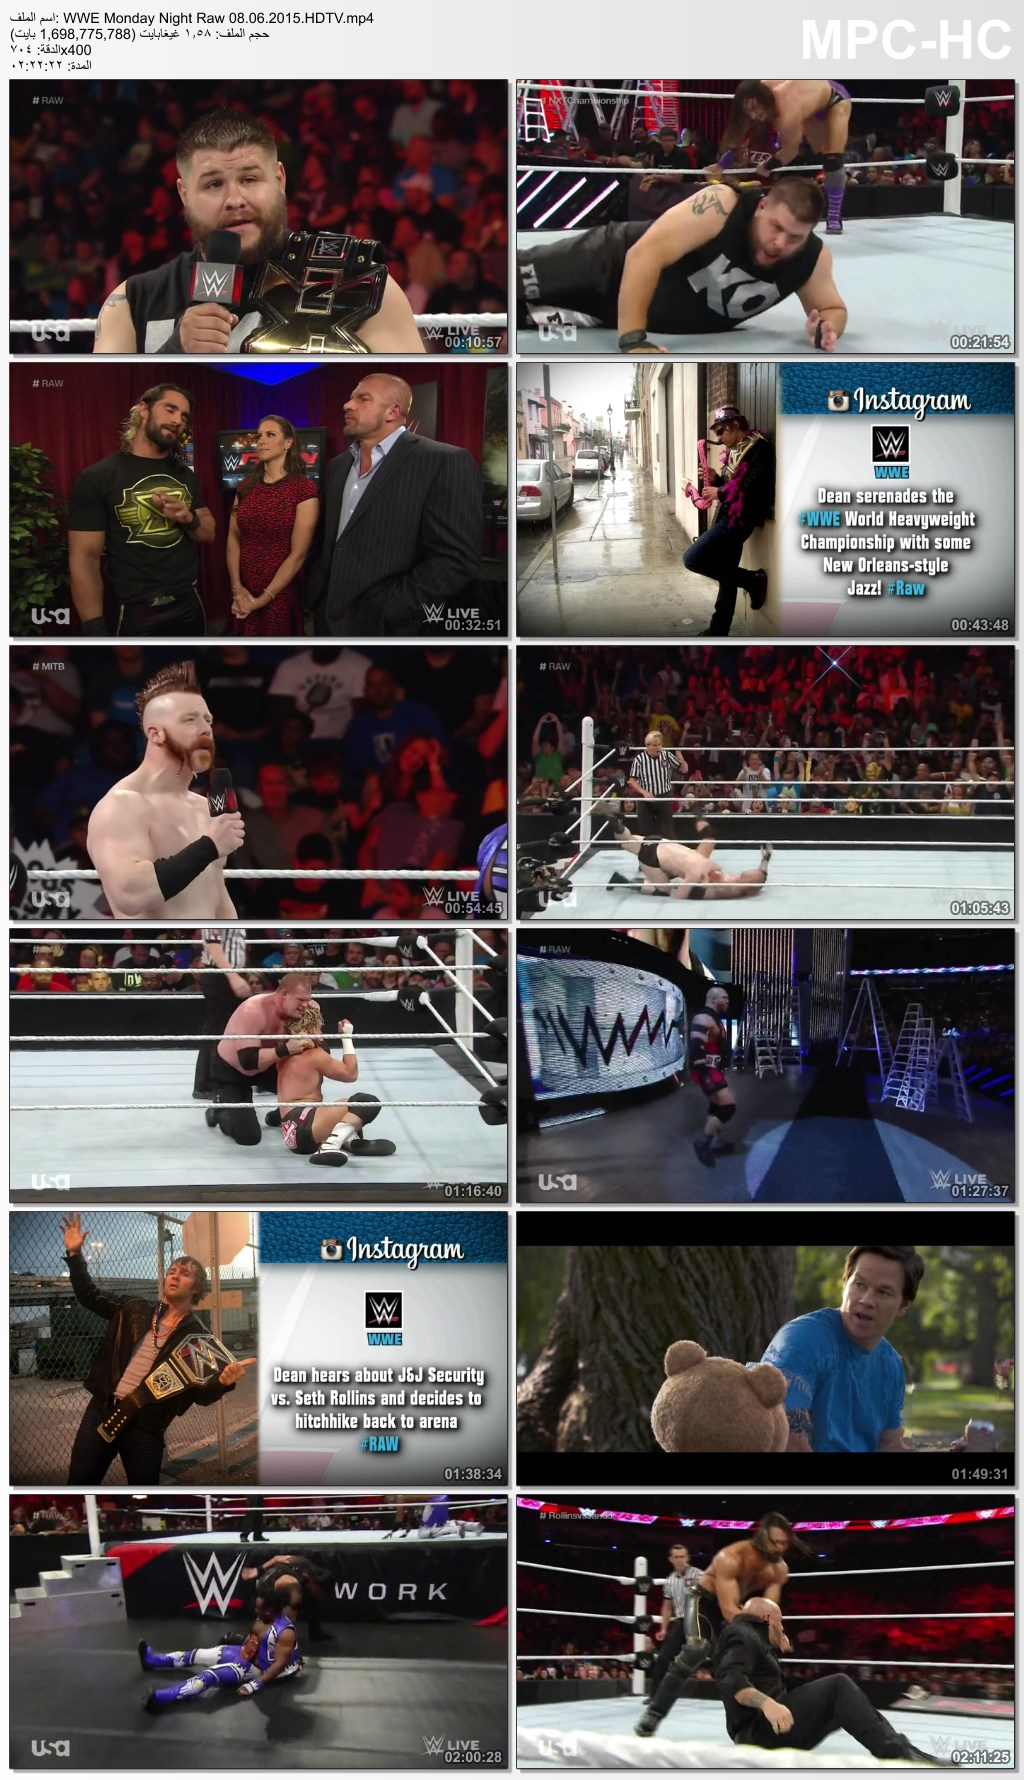 WWE,RAW,Monday,WWE Monday Night Raw